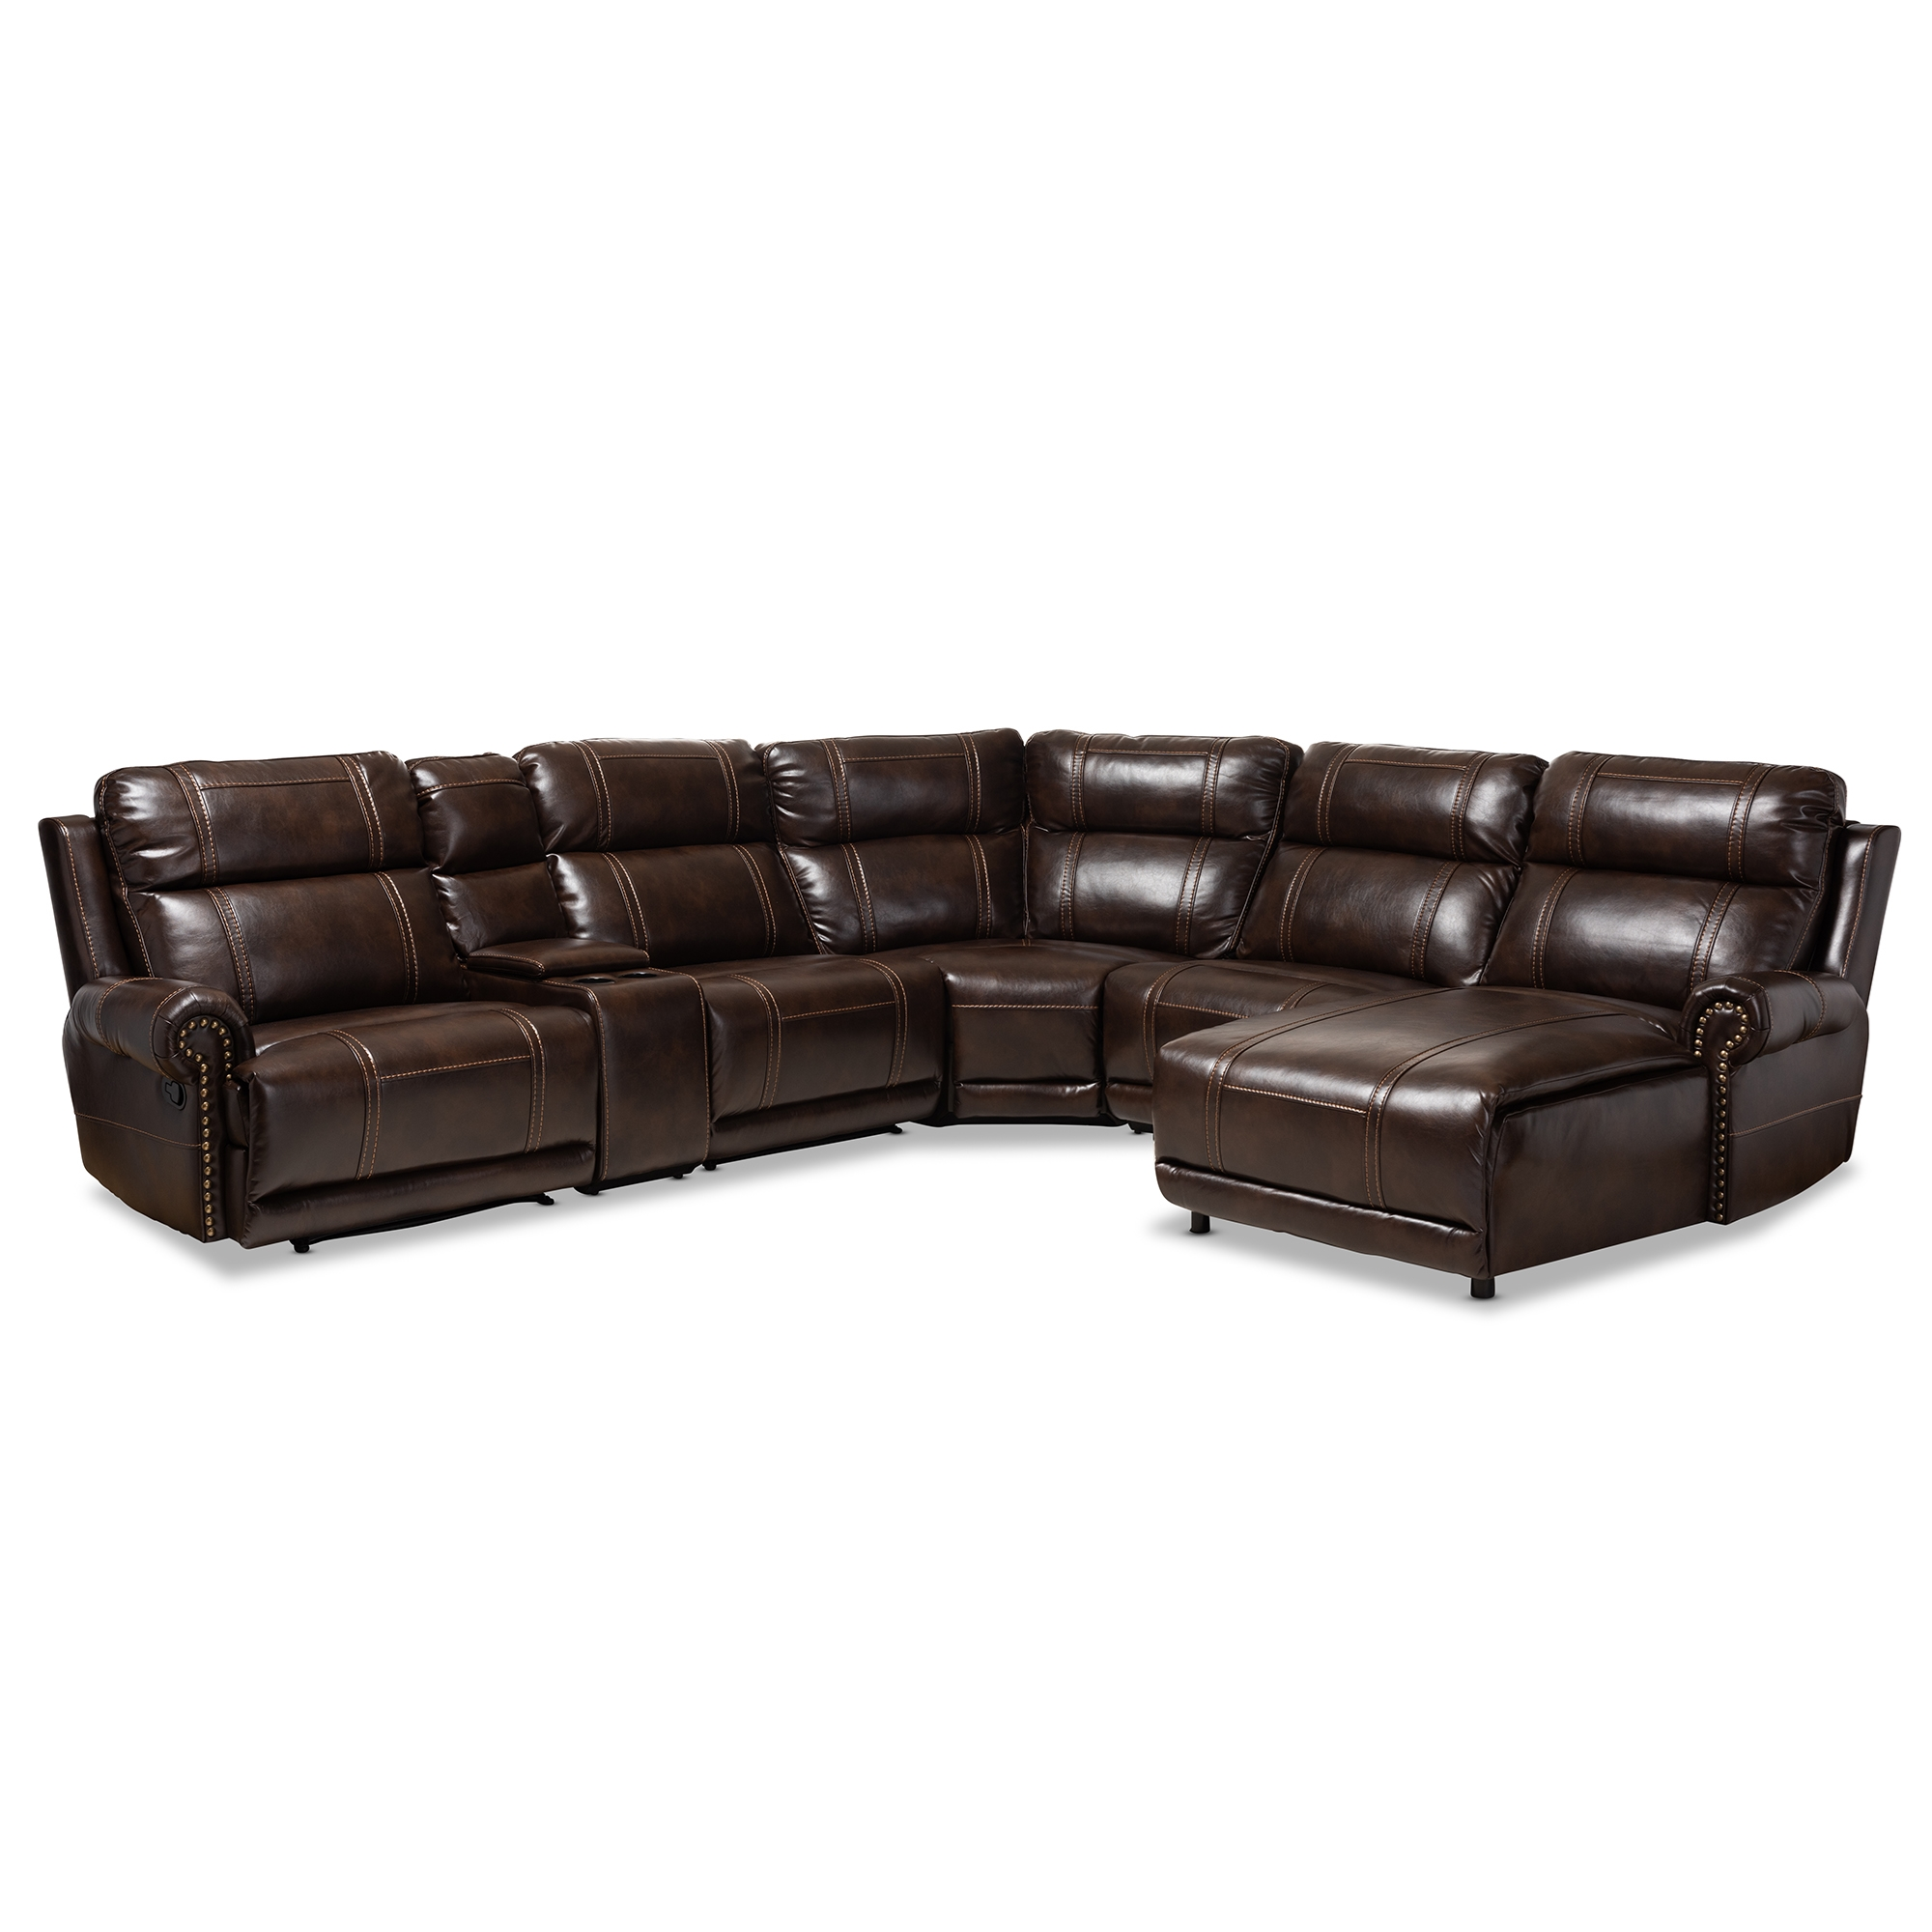 Baxton Studio Dacio Modern And Contemporary Brown Faux Leather Upholstered  6 Piece Sectional Recliner Sofa